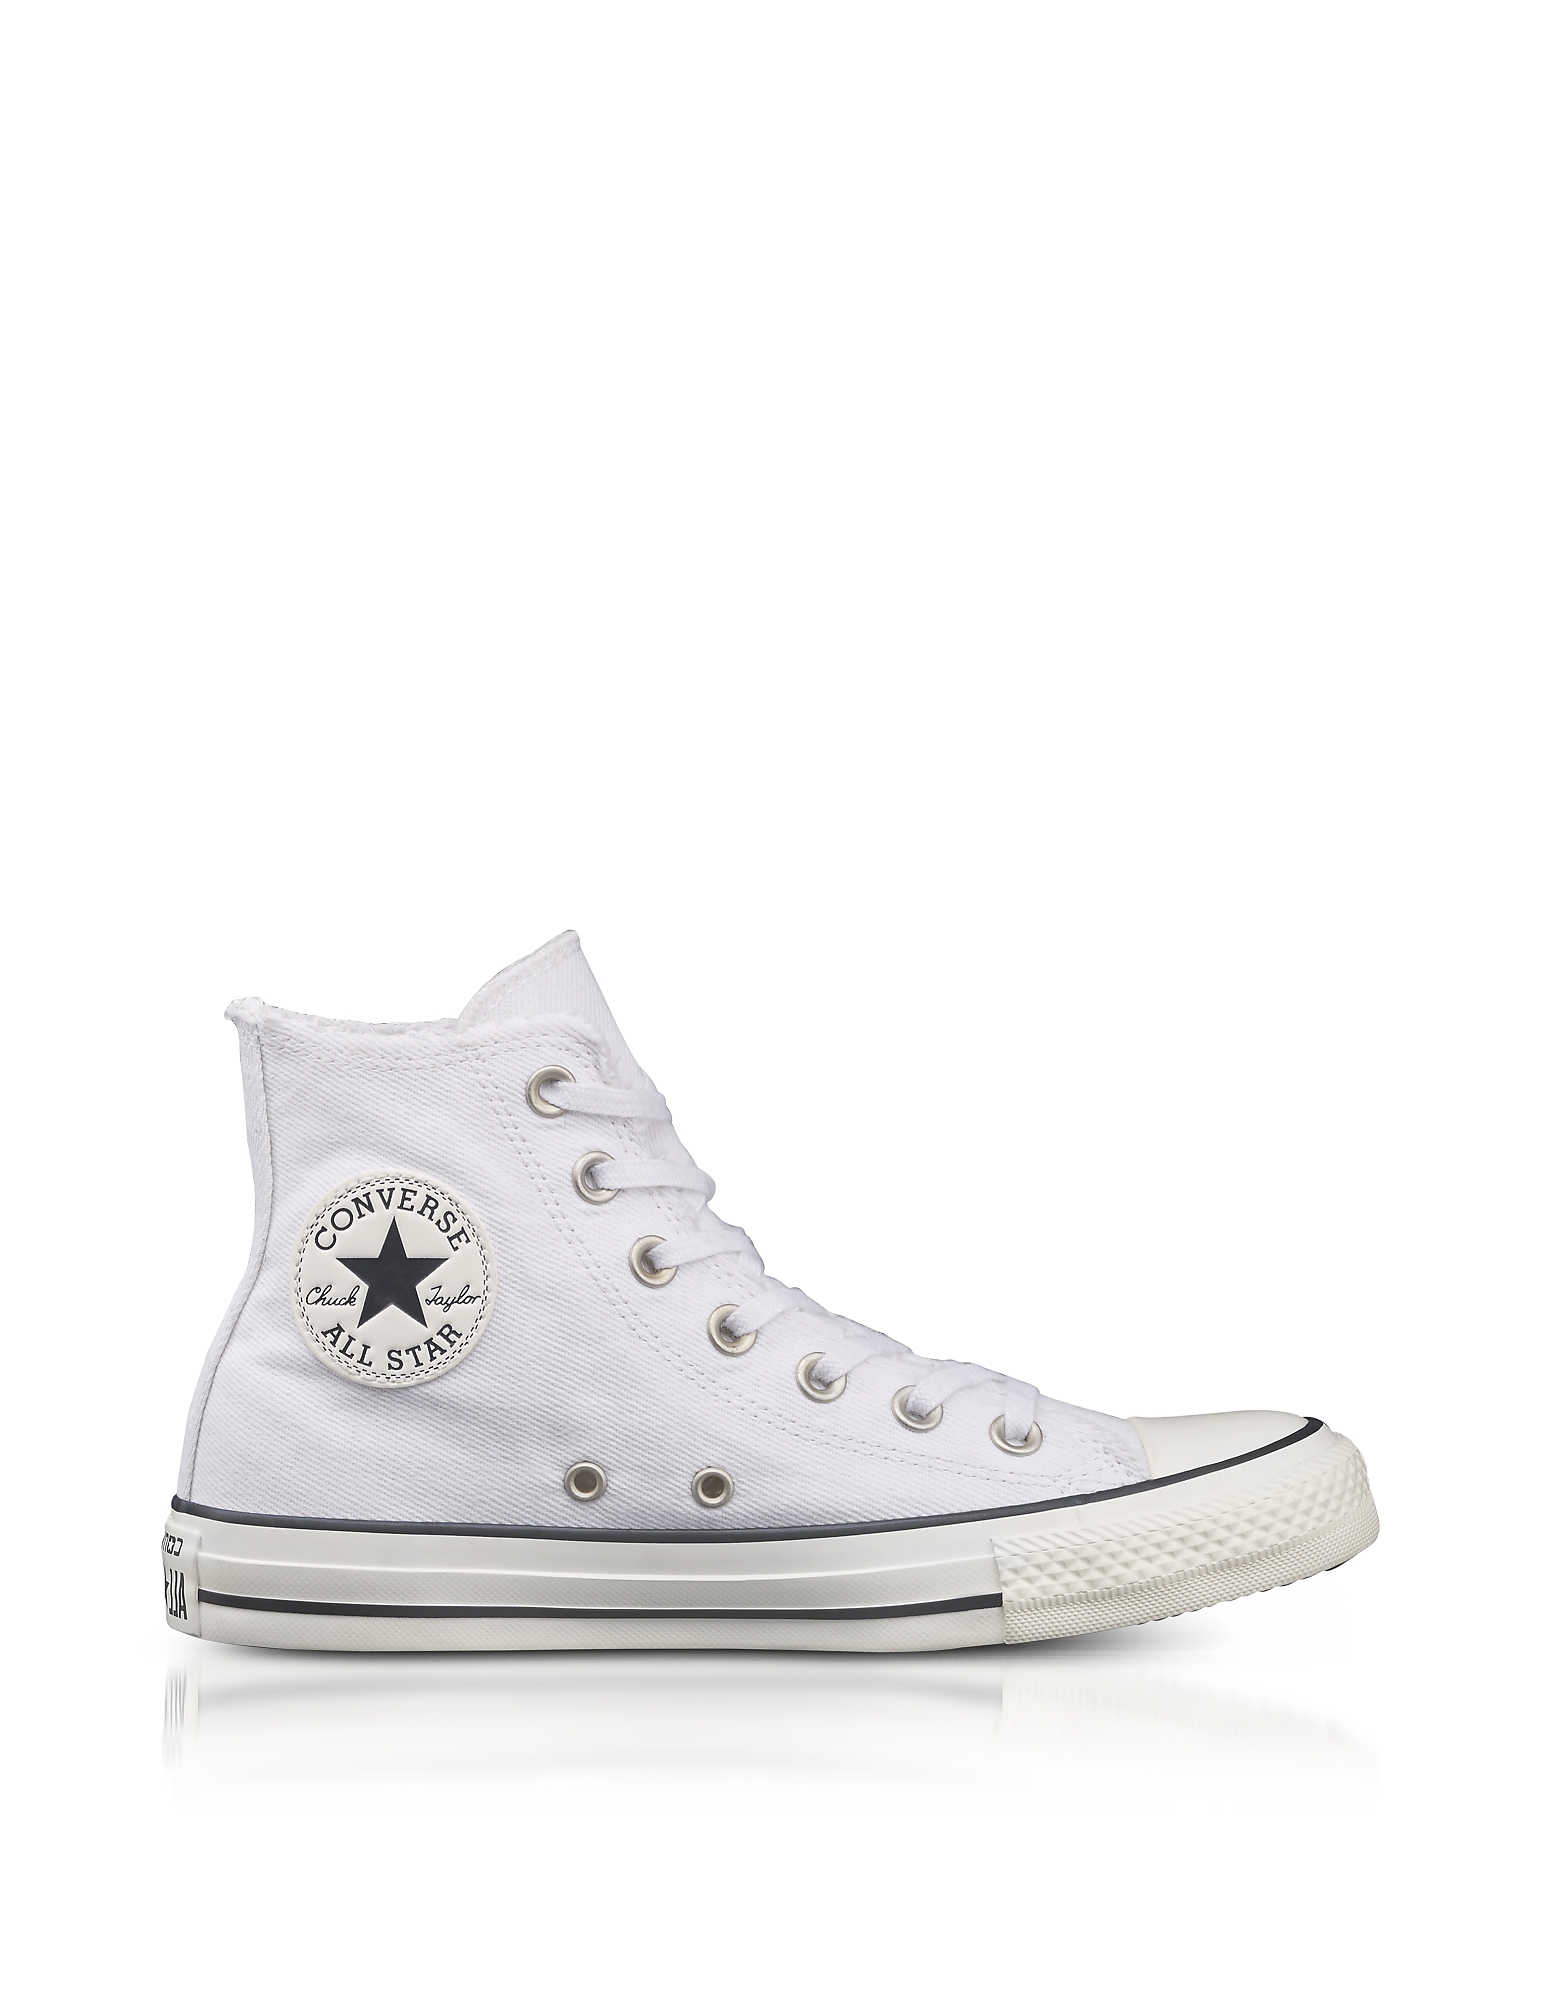 Converse Limited Edition Shoes, Chuck Taylor All Star High White Canvas Sneakers